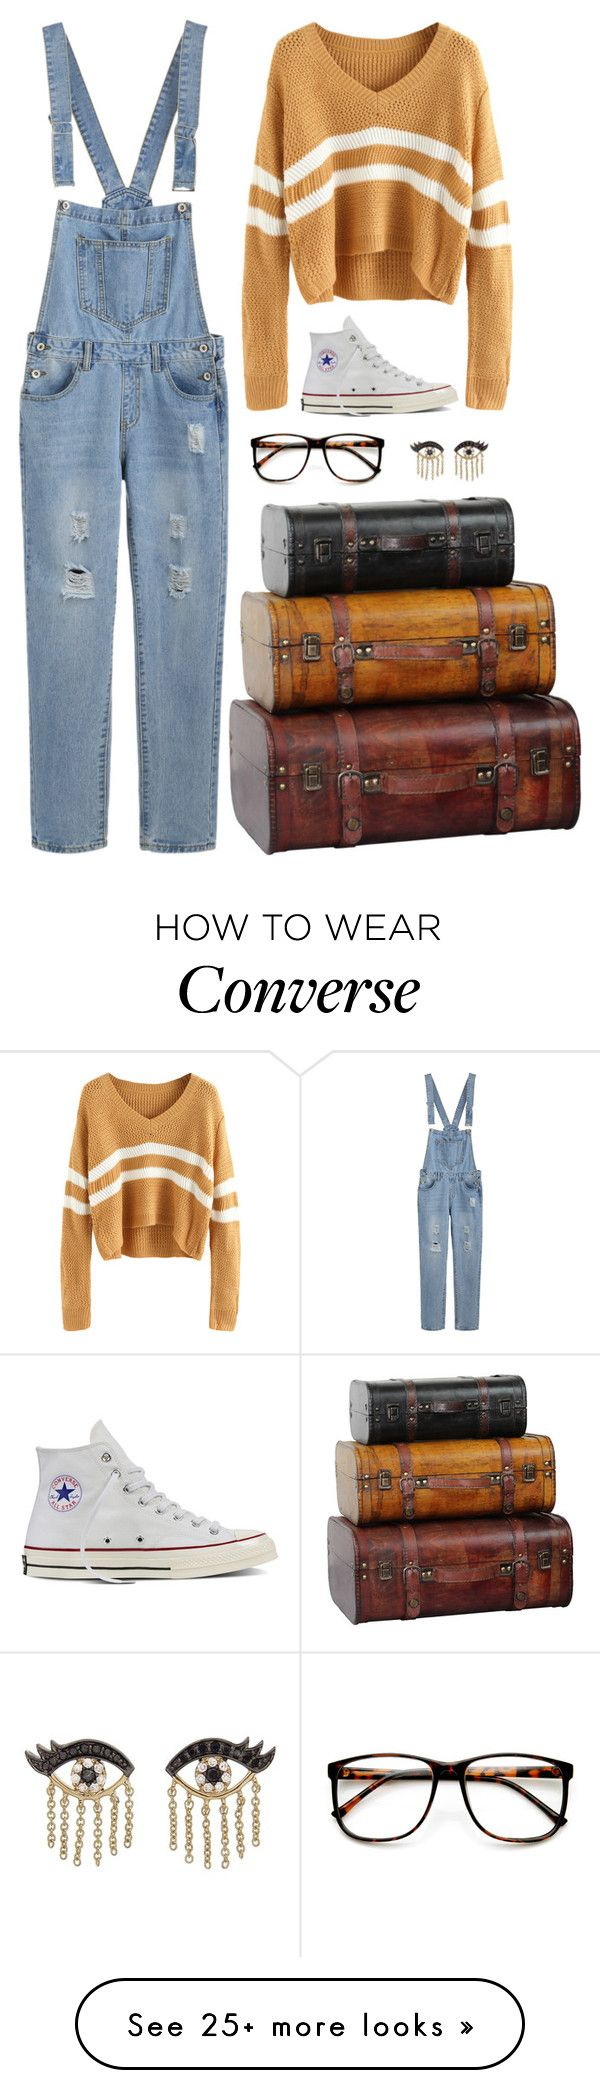 """""""Untitled #1114"""" by samantha-hannum on Polyvore featuring Converse, ZeroUV and Sydney Evan"""